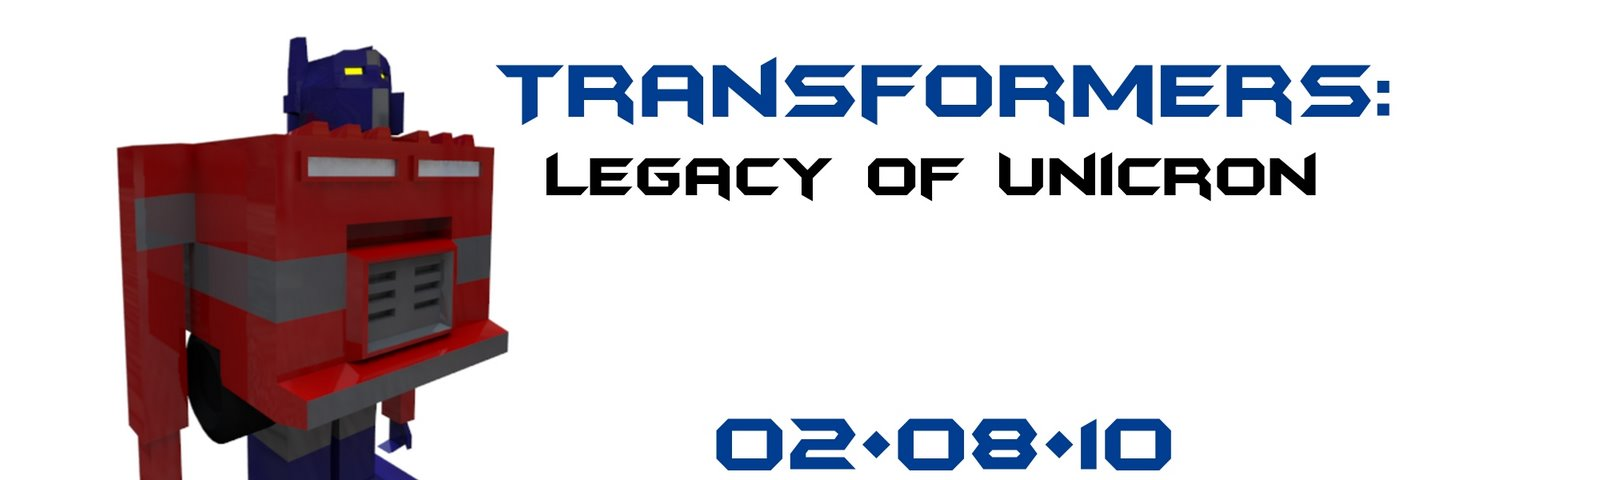 Transformers: Legacy of Unicron